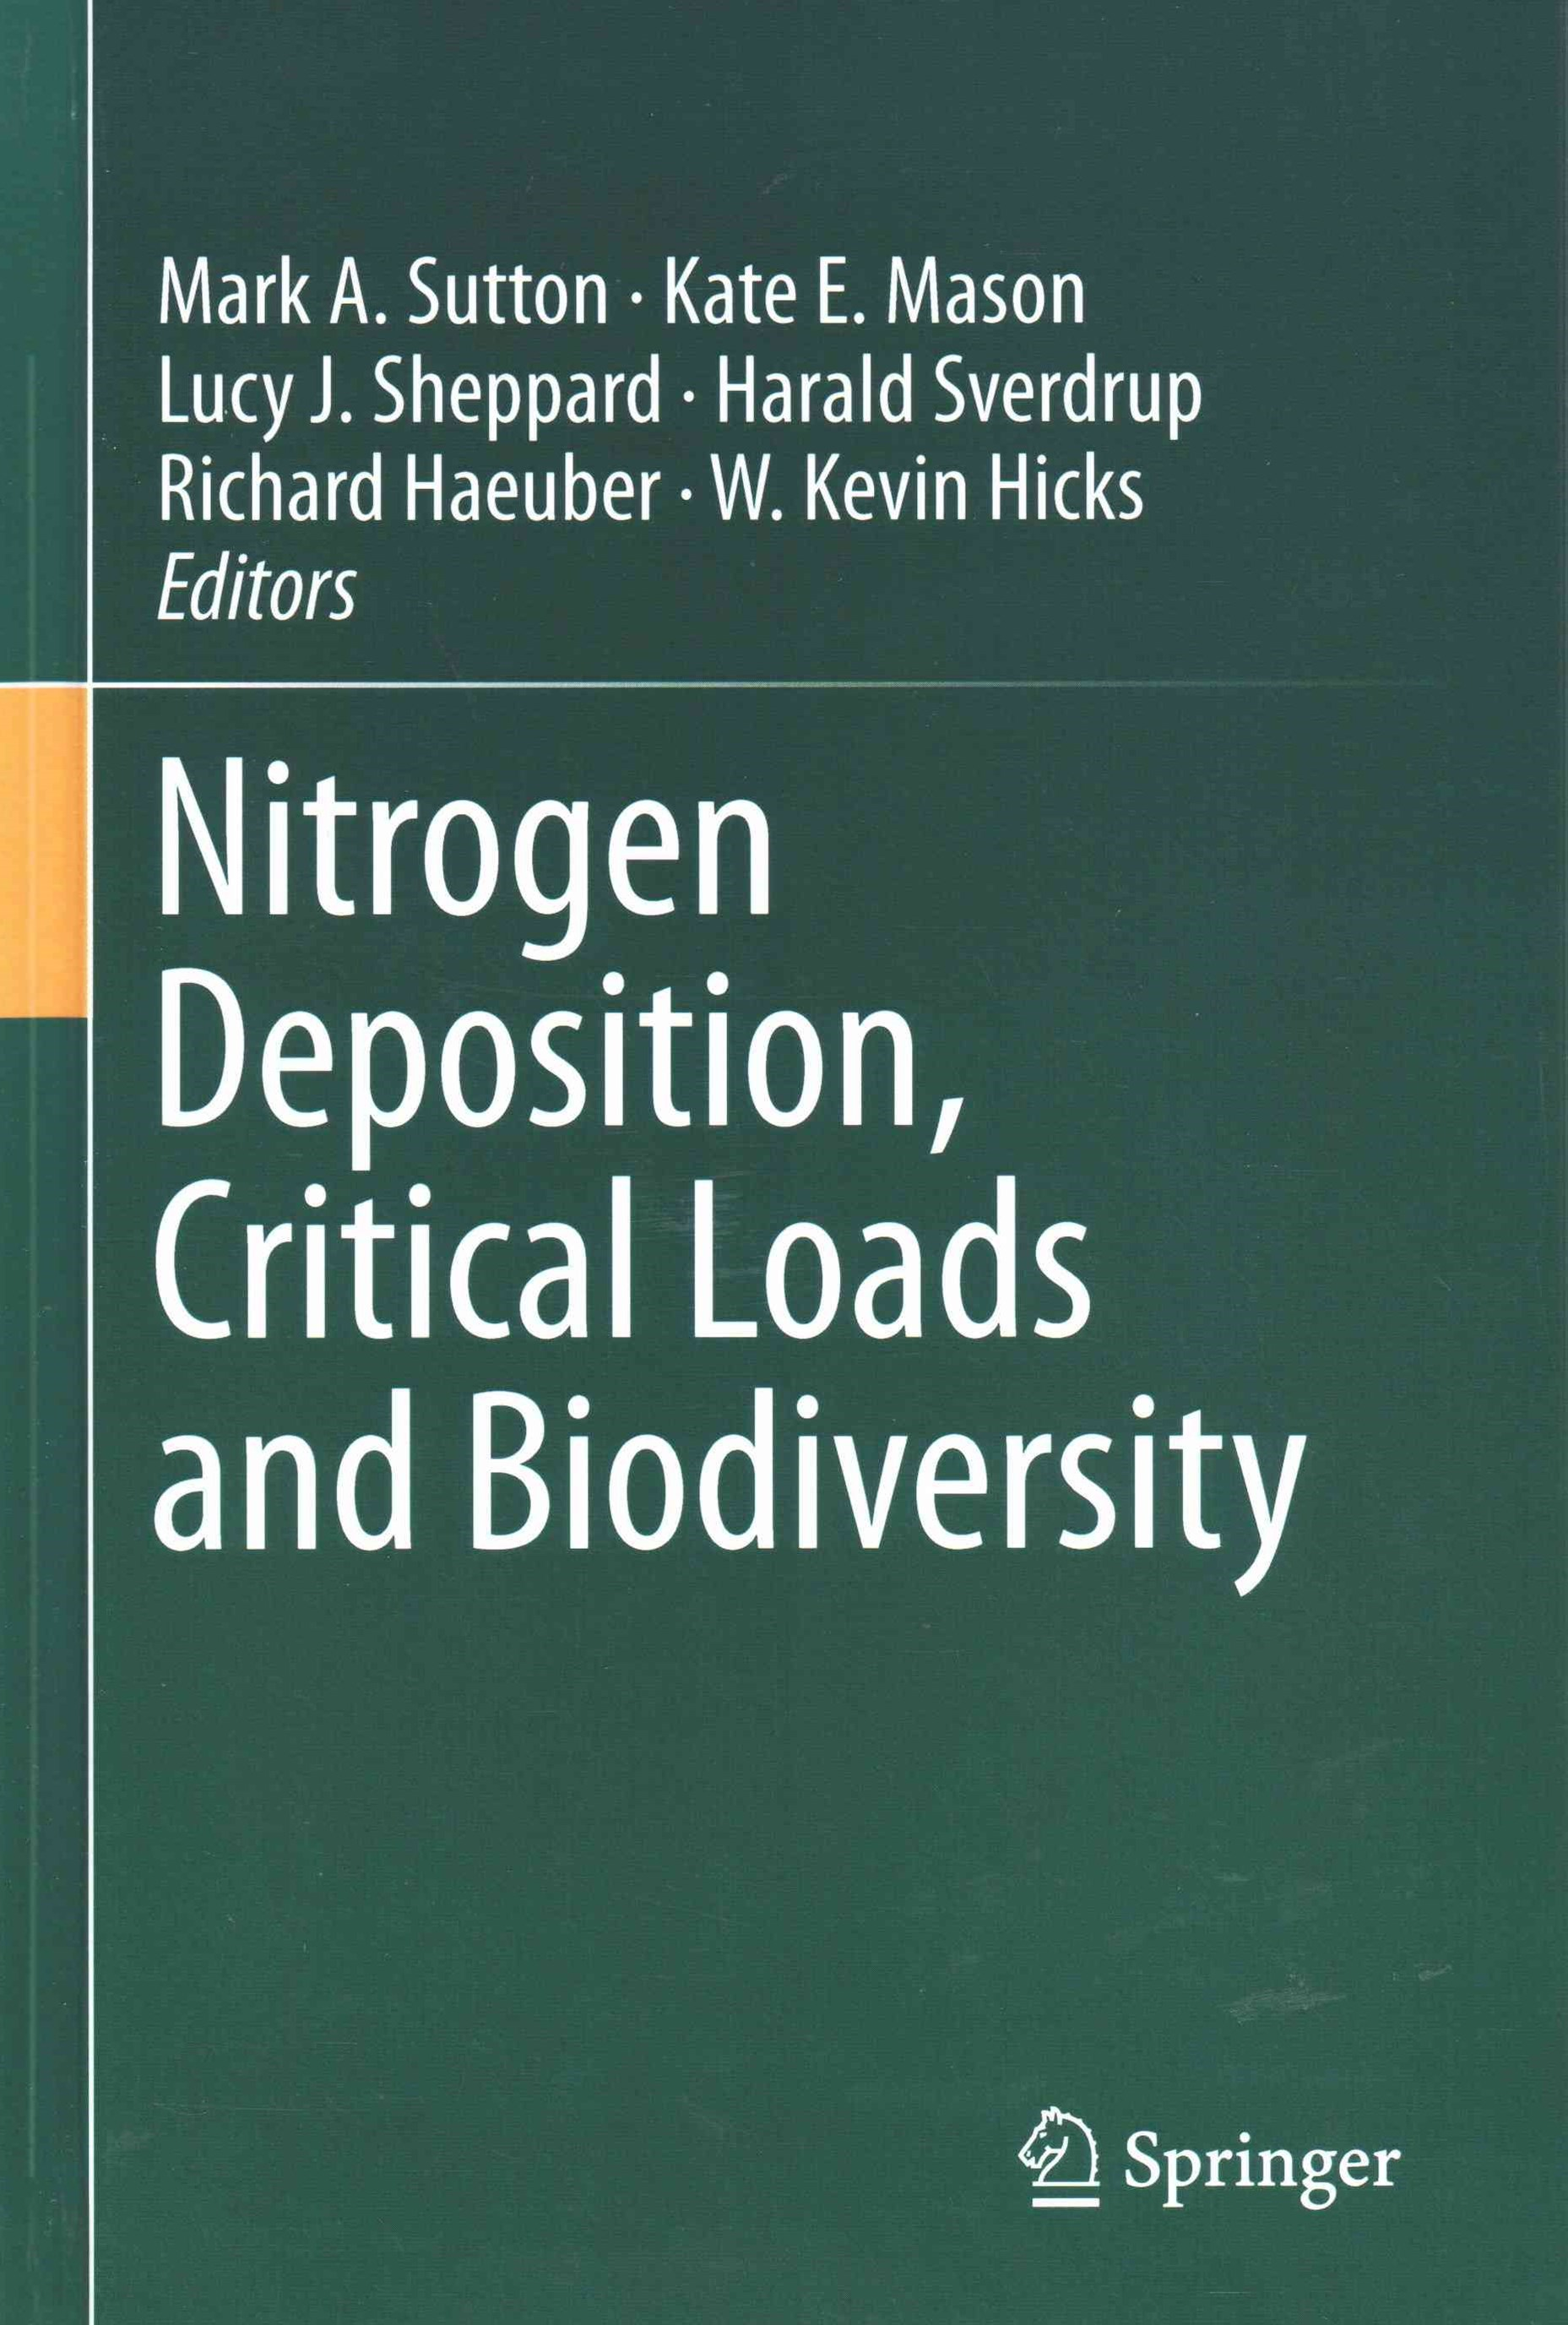 Nitrogen Deposition, Critical Loads and Biodiversity